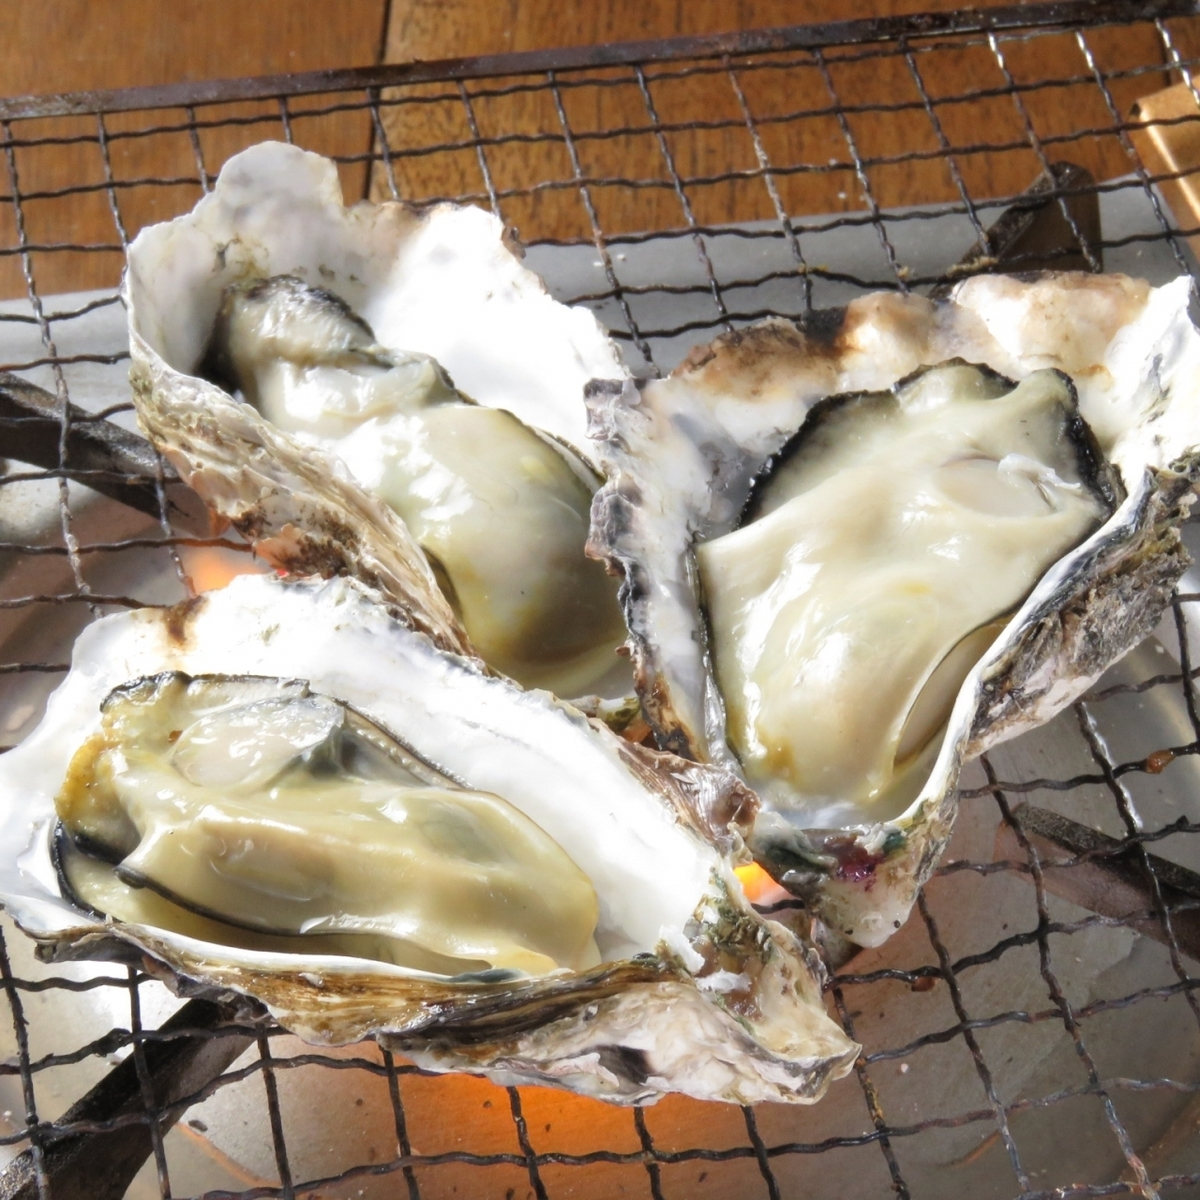 About 10 Hiroshima oysters 1 kg (baked or steamed)